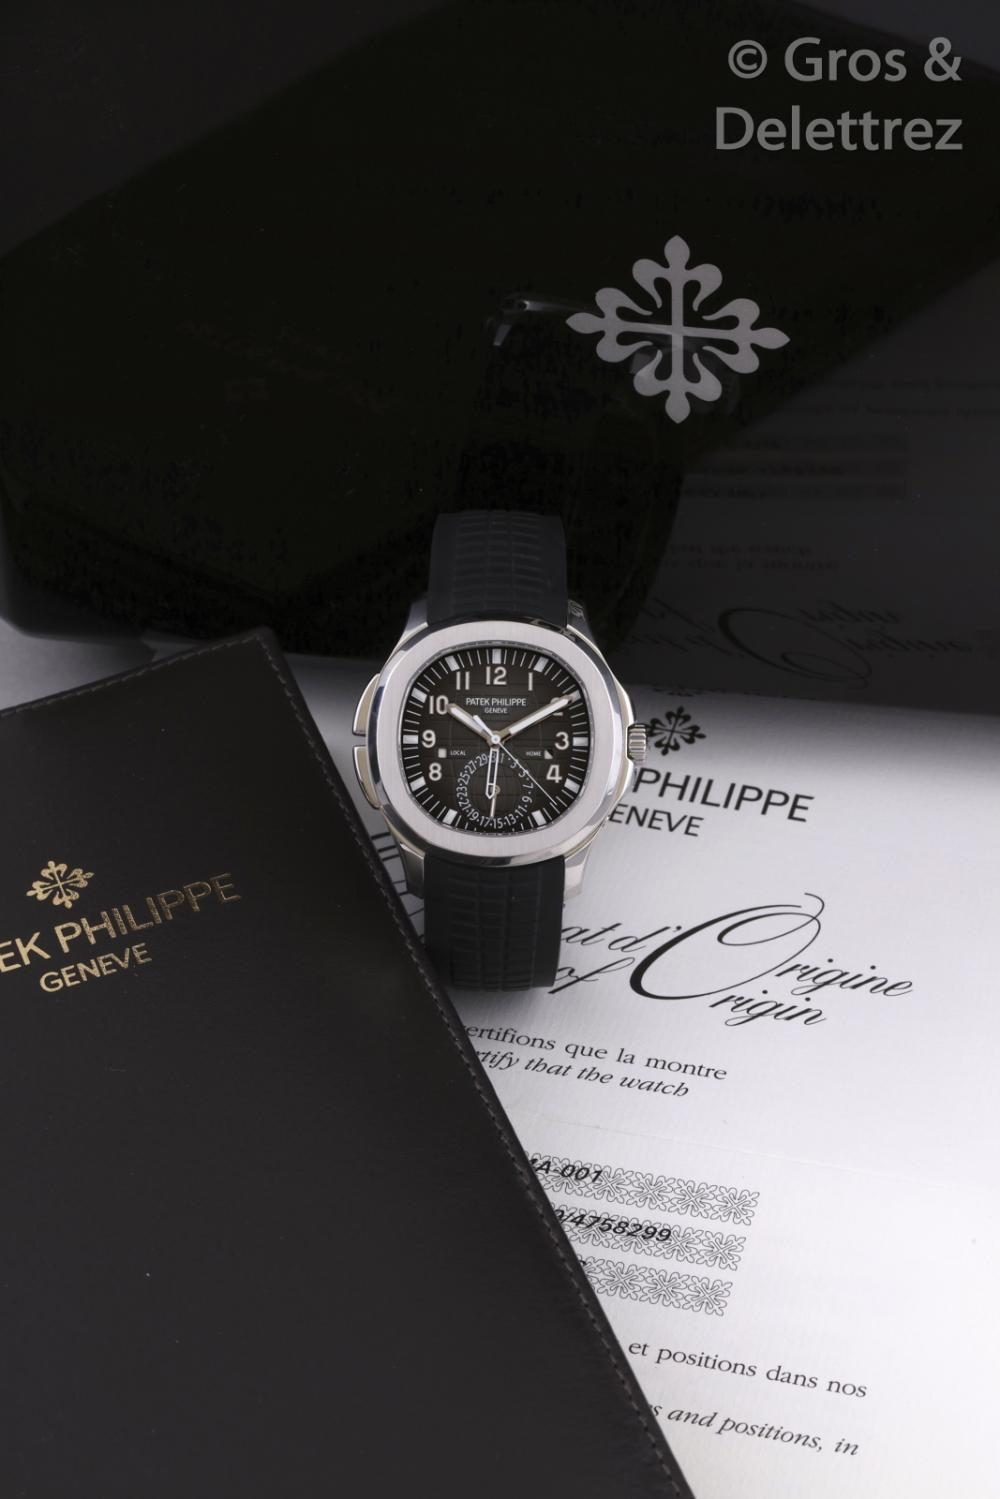 Patek Philippe Aquanaut Travel Time Ref 5164a 001 N 56xx